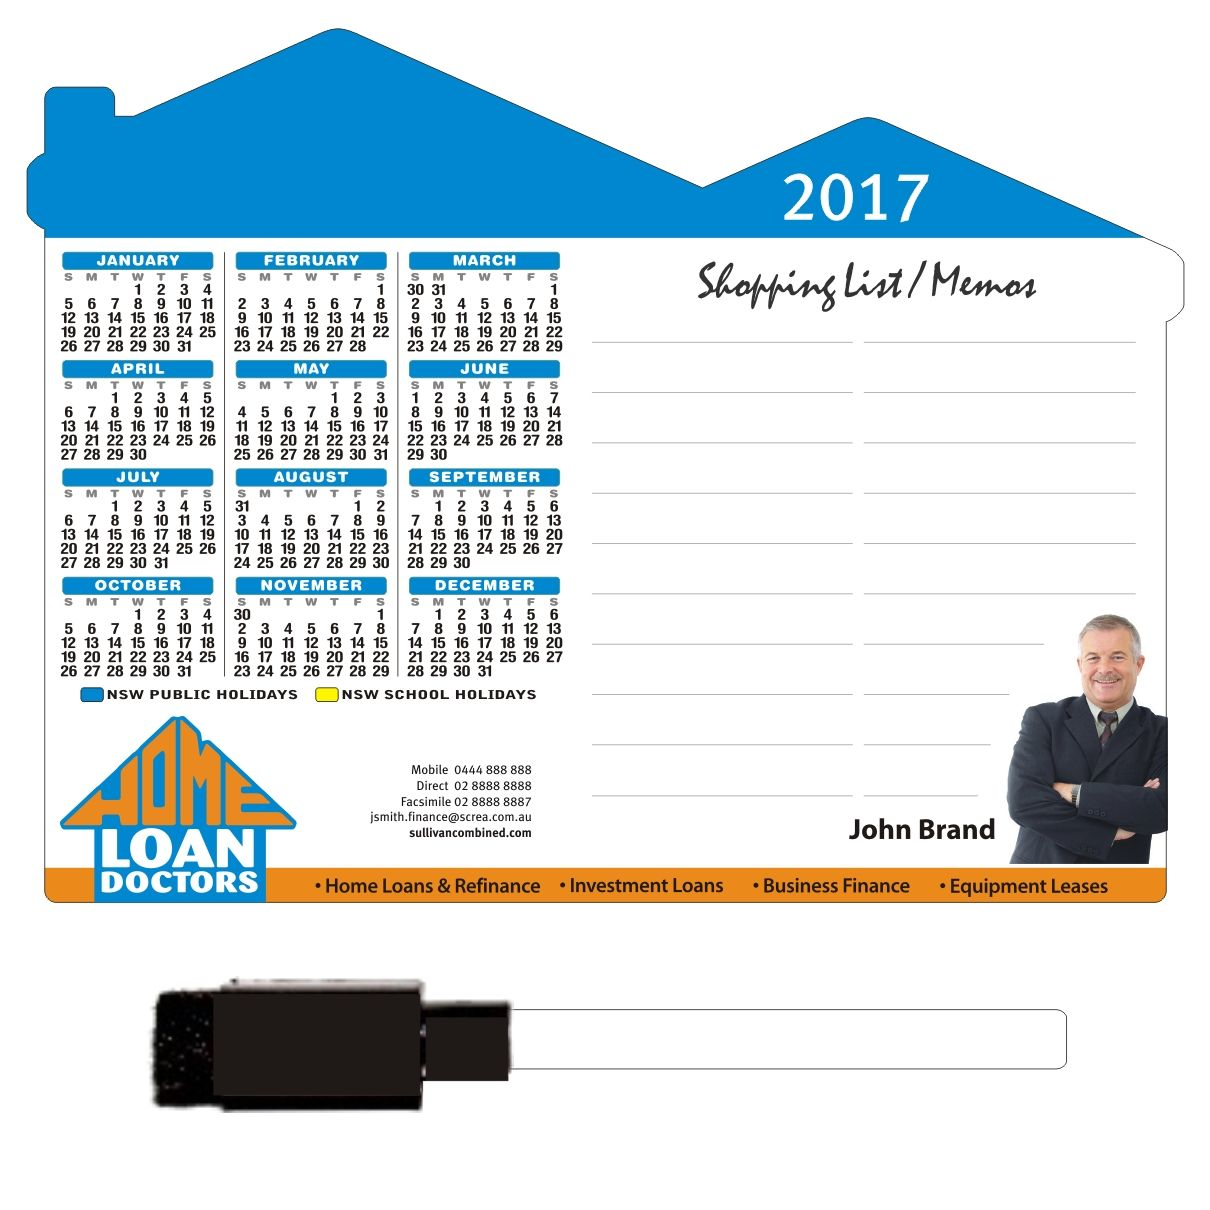 A5 Size House Shape Magnets Get Your Name On The Fridge For A Full Year Www Clevercalendarmagnets Com Au Real Estate Memo Years